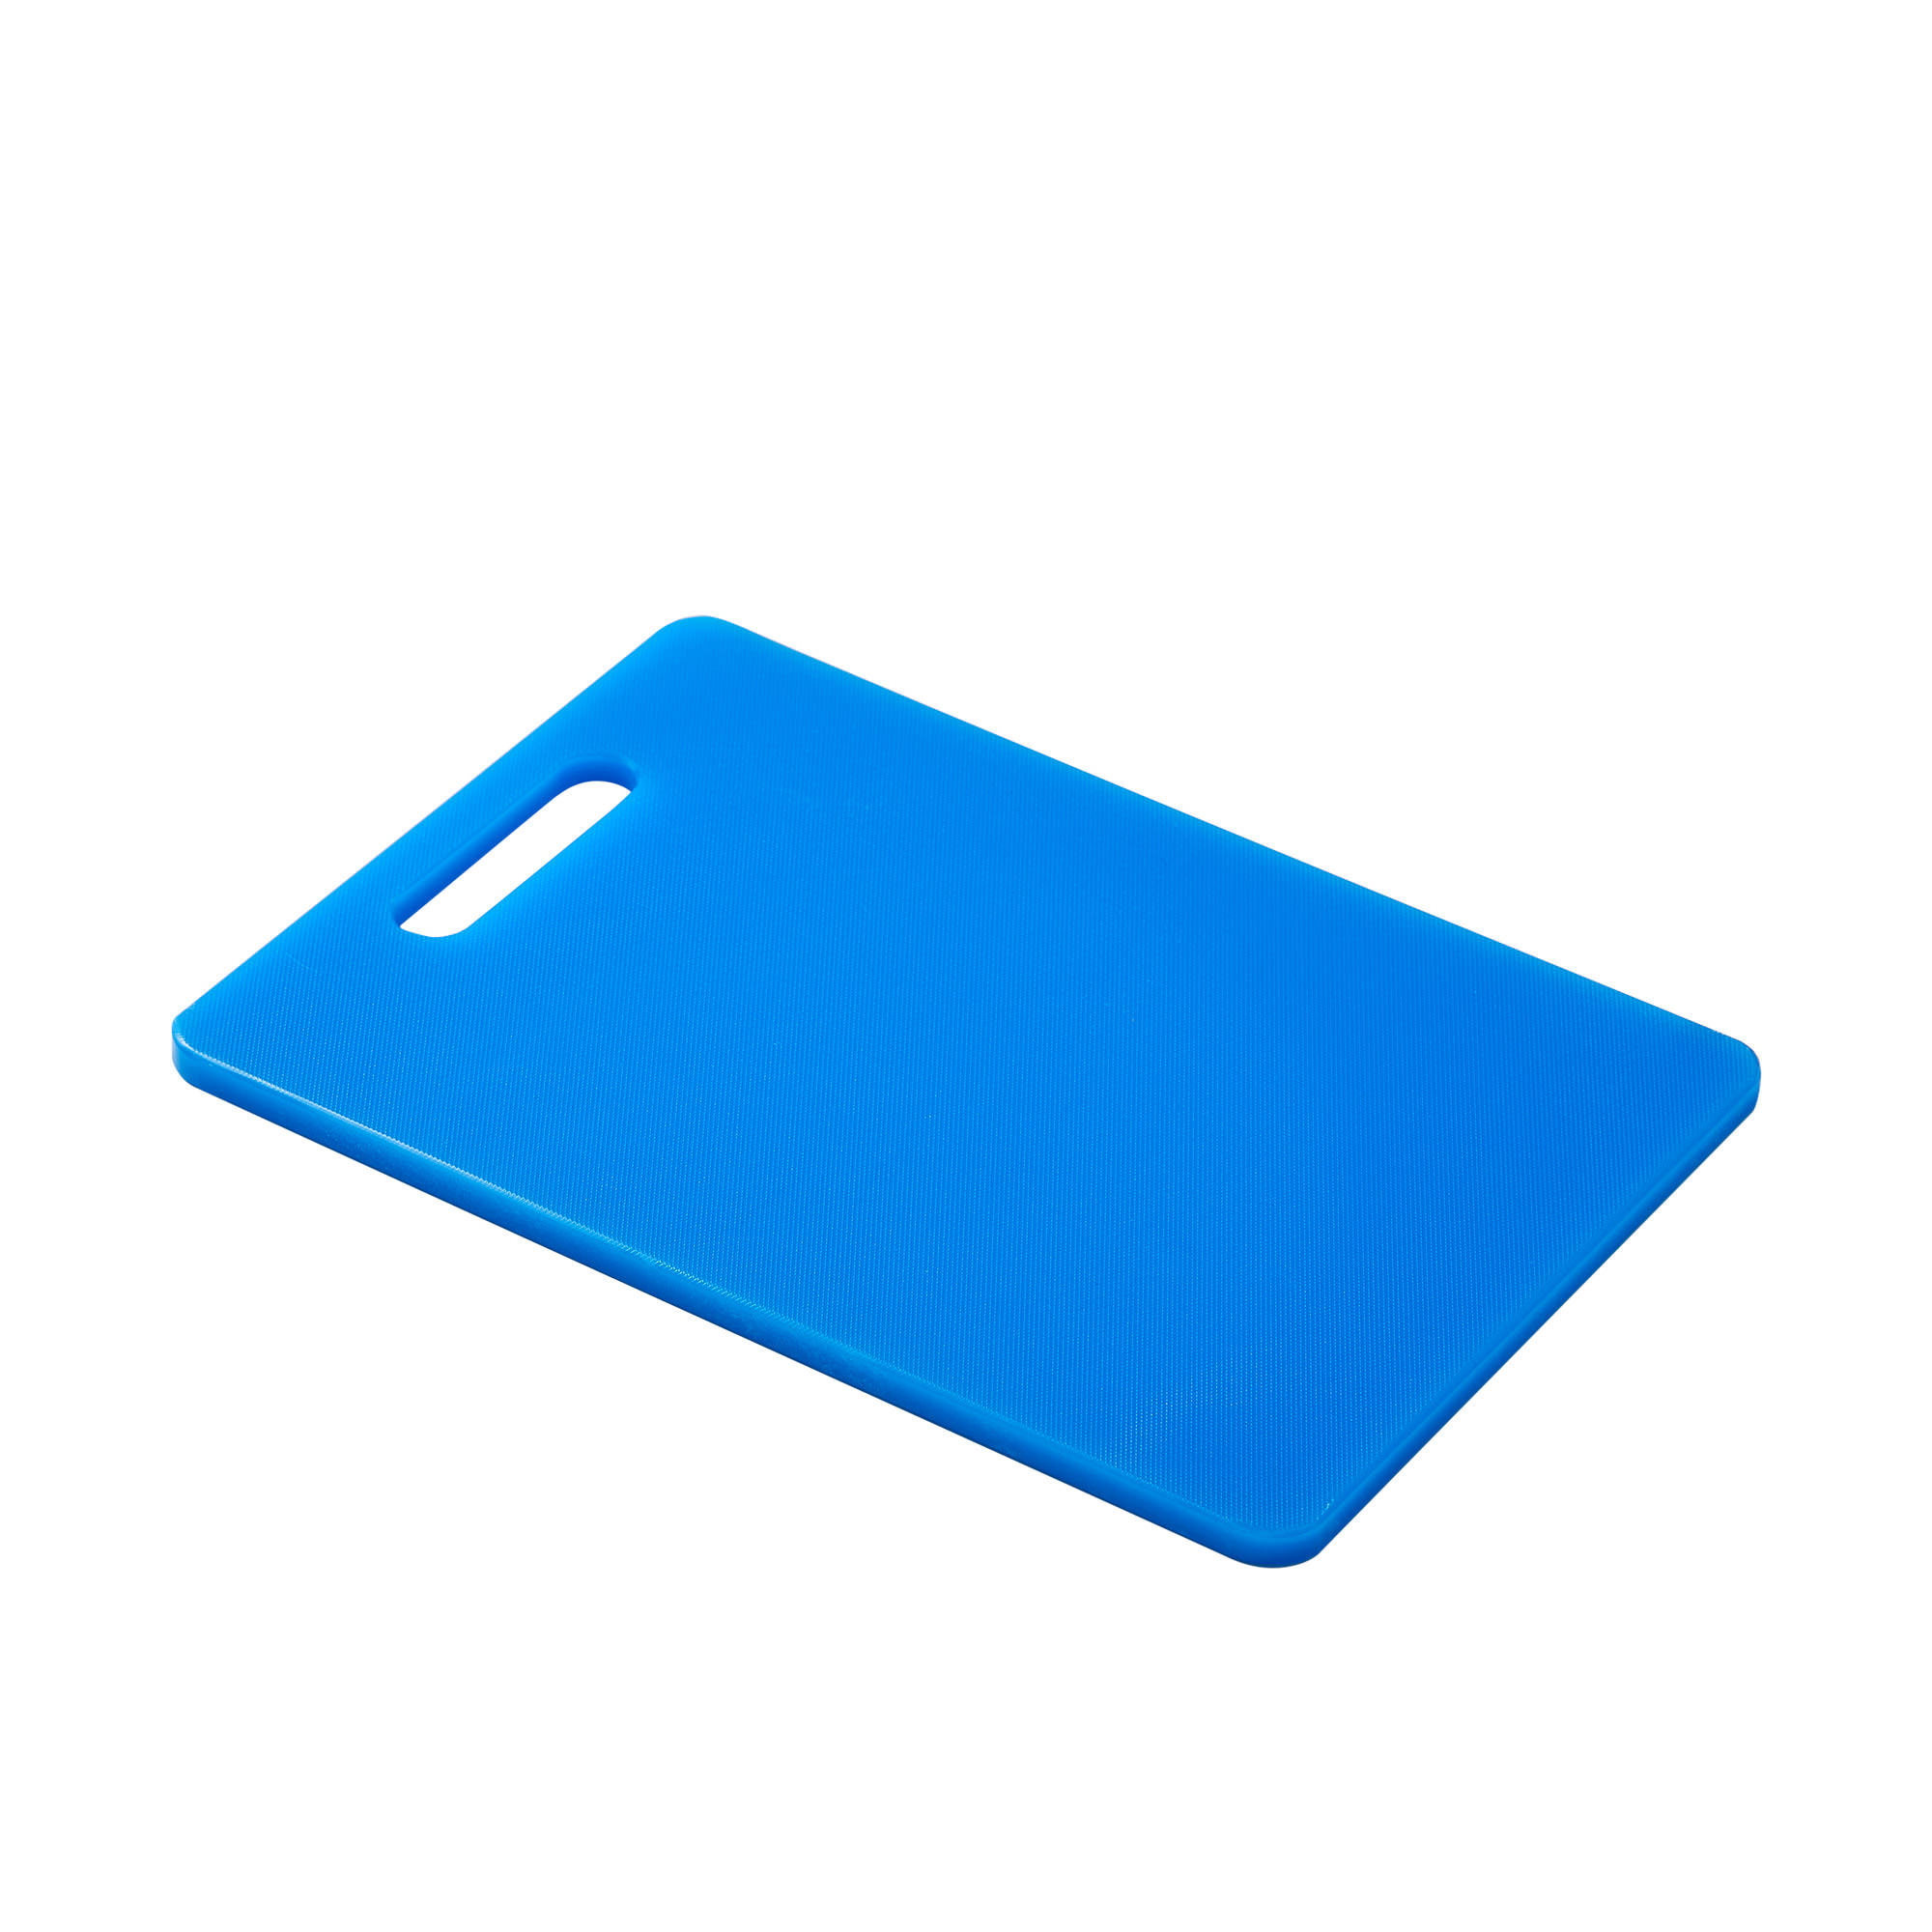 Kitchen Pro Classic Cutting Board 36x25x1.2cm Blue